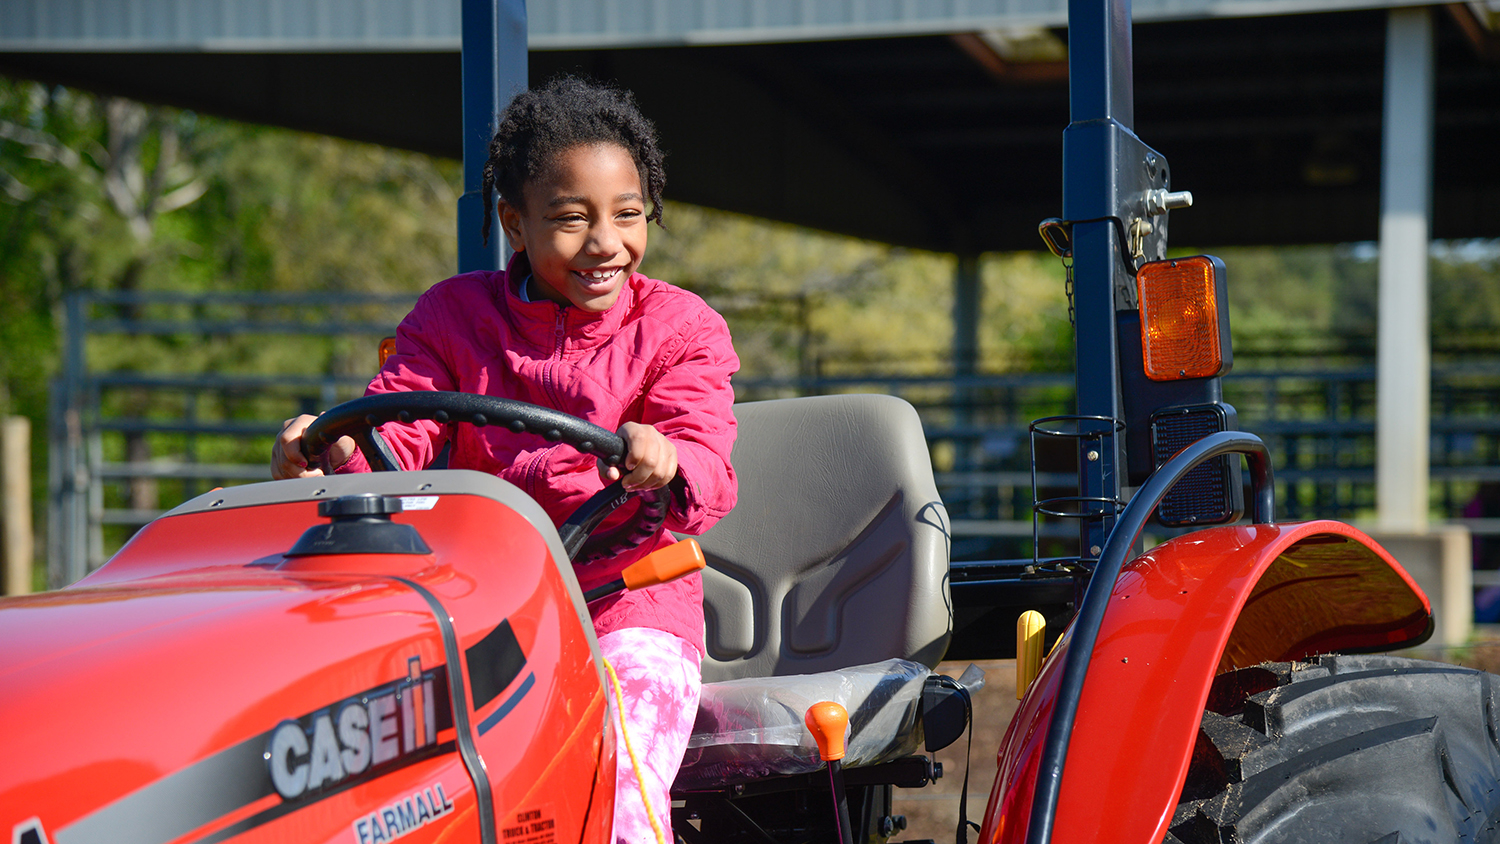 Little girl on tractor at CALS Farm Animal Days